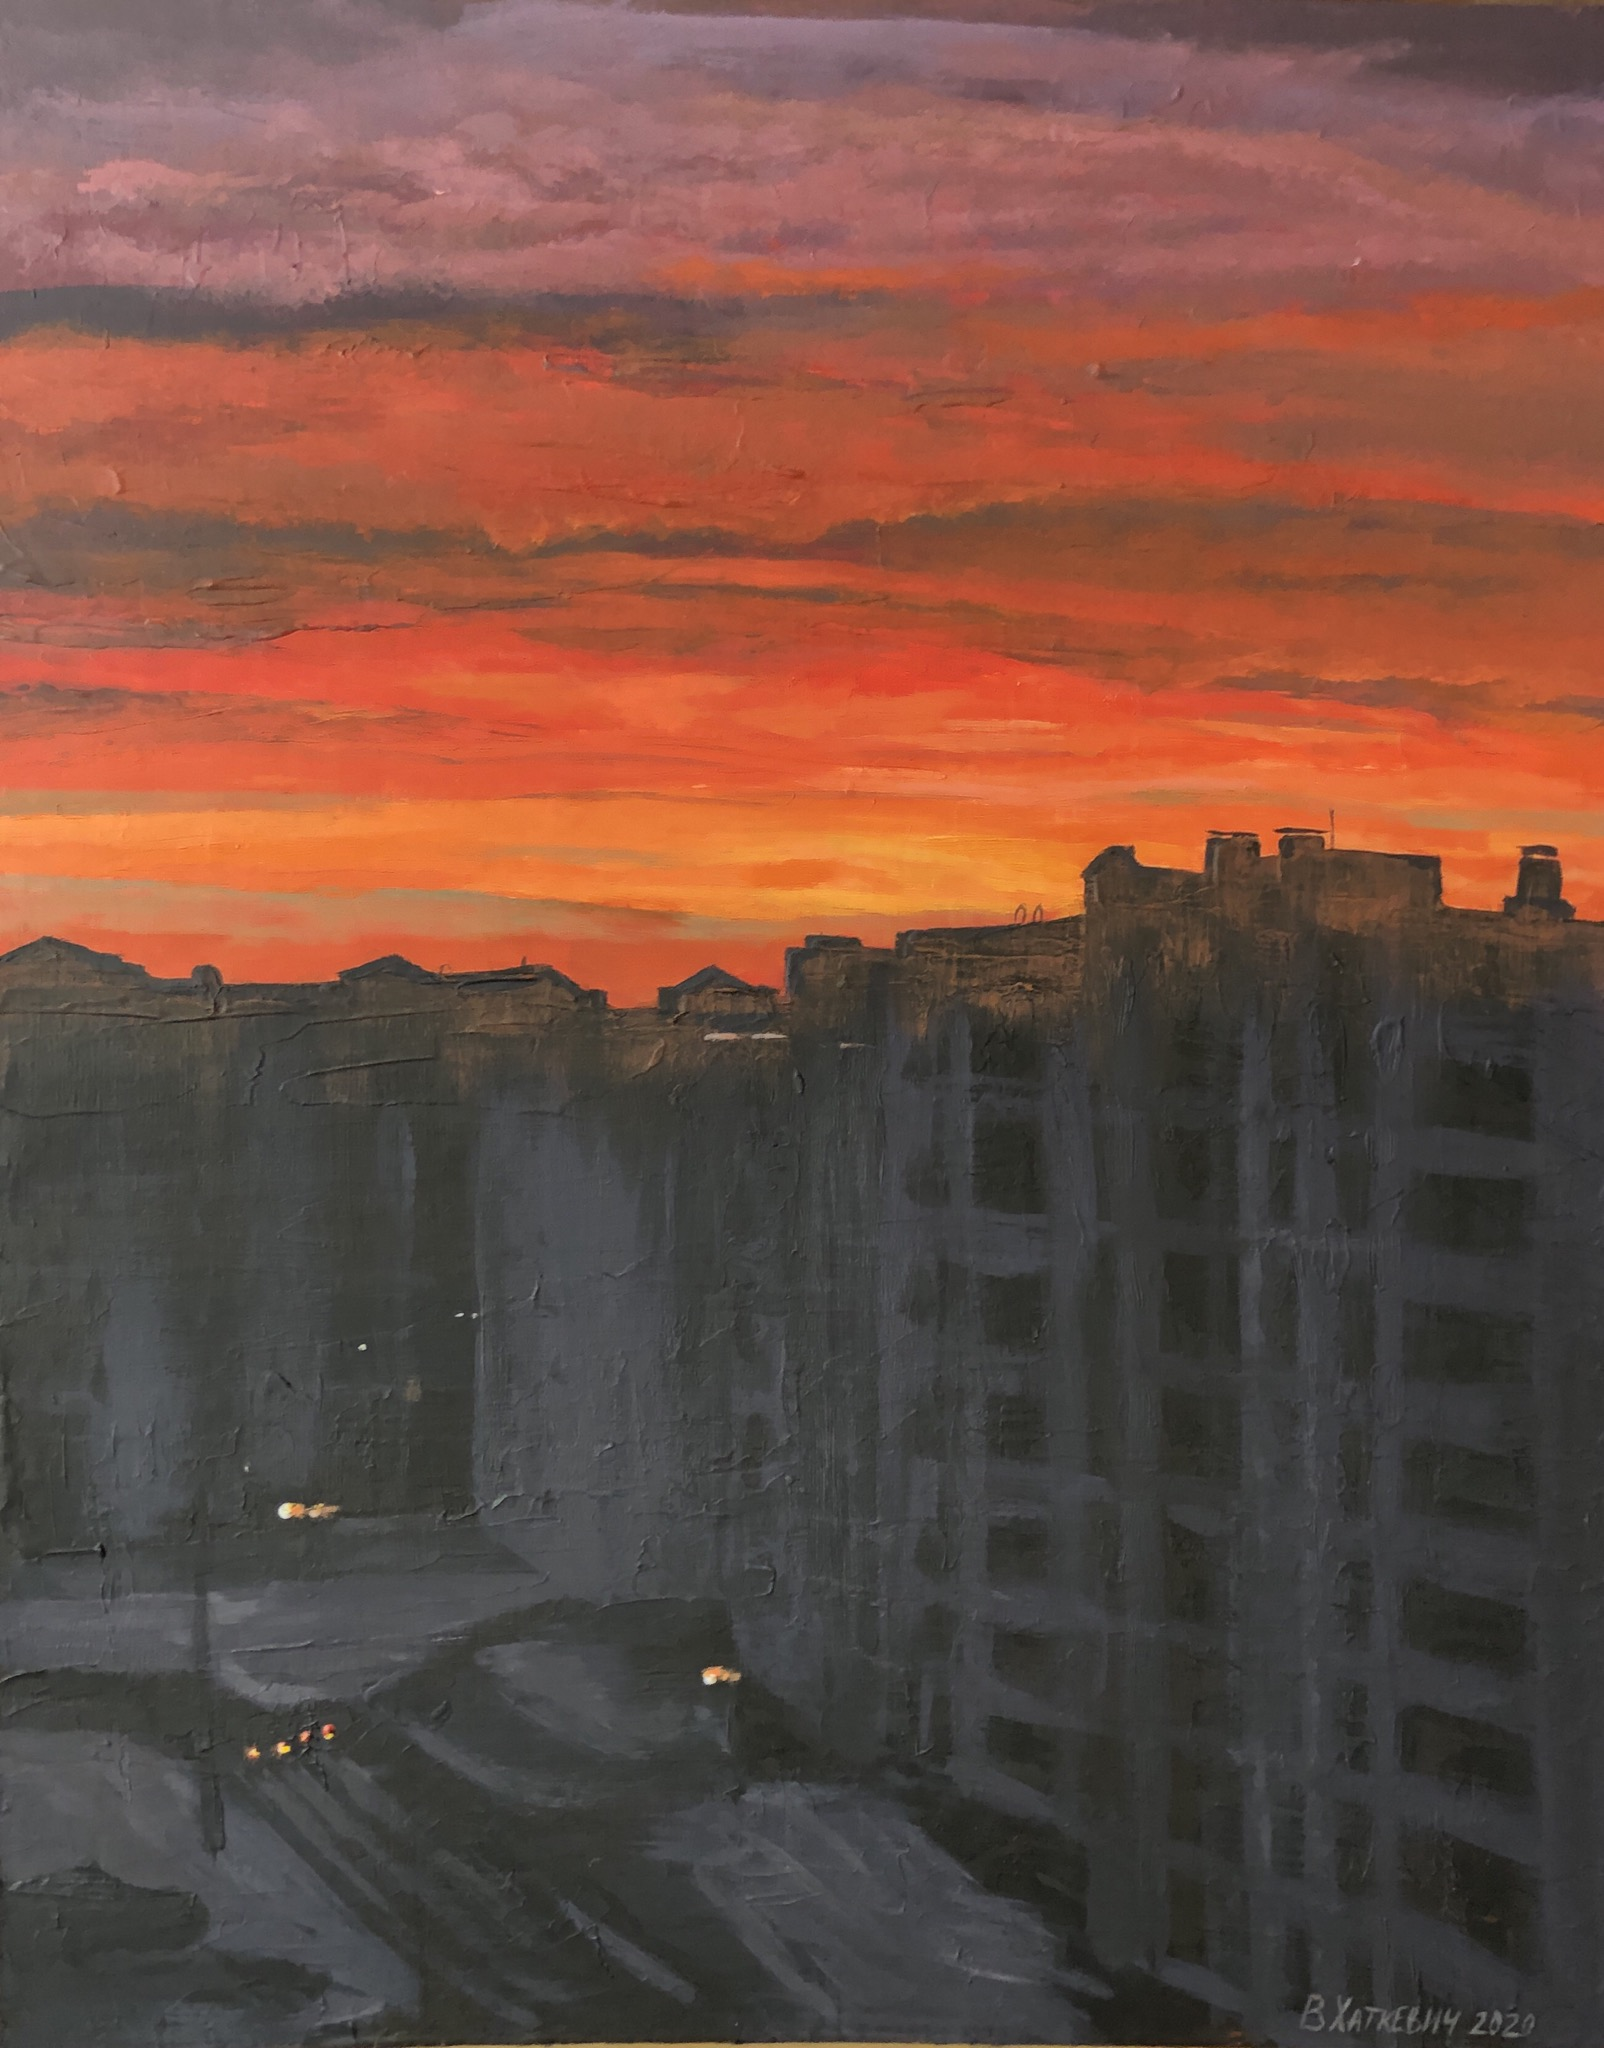 Dawn over the city